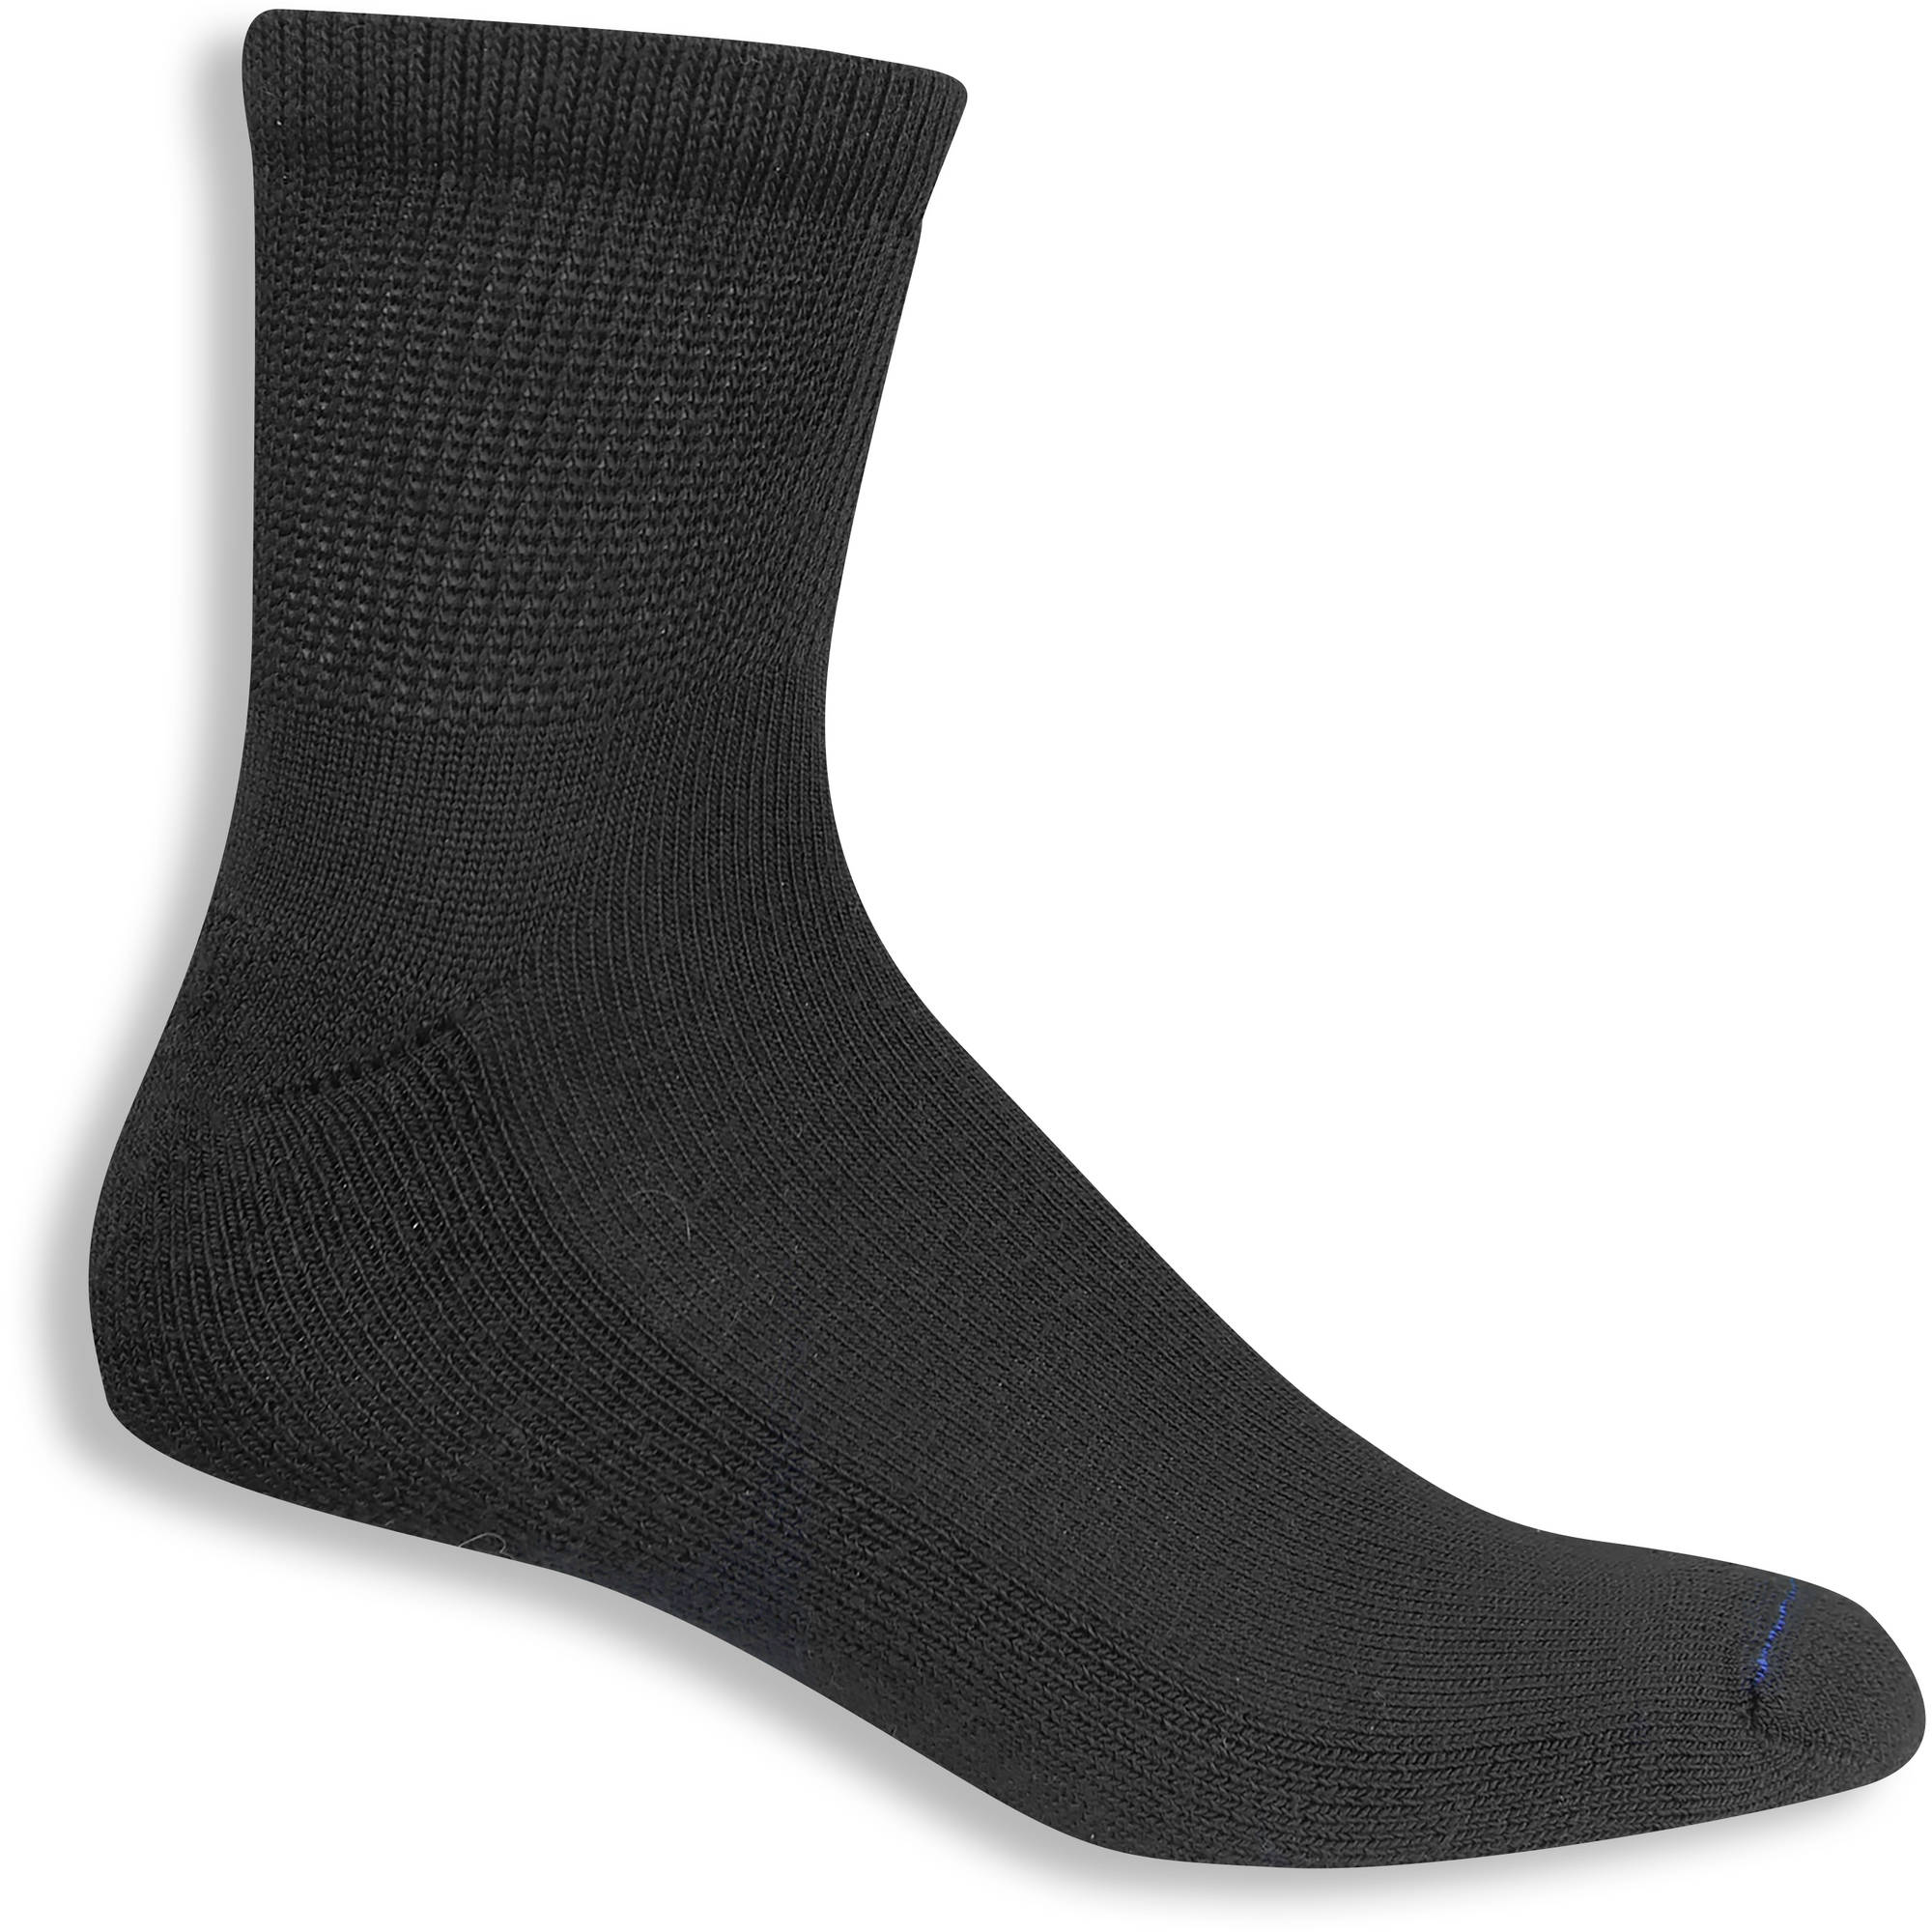 Men's Diabetic and Circulatory Basic Ankle Socks 4-Pack